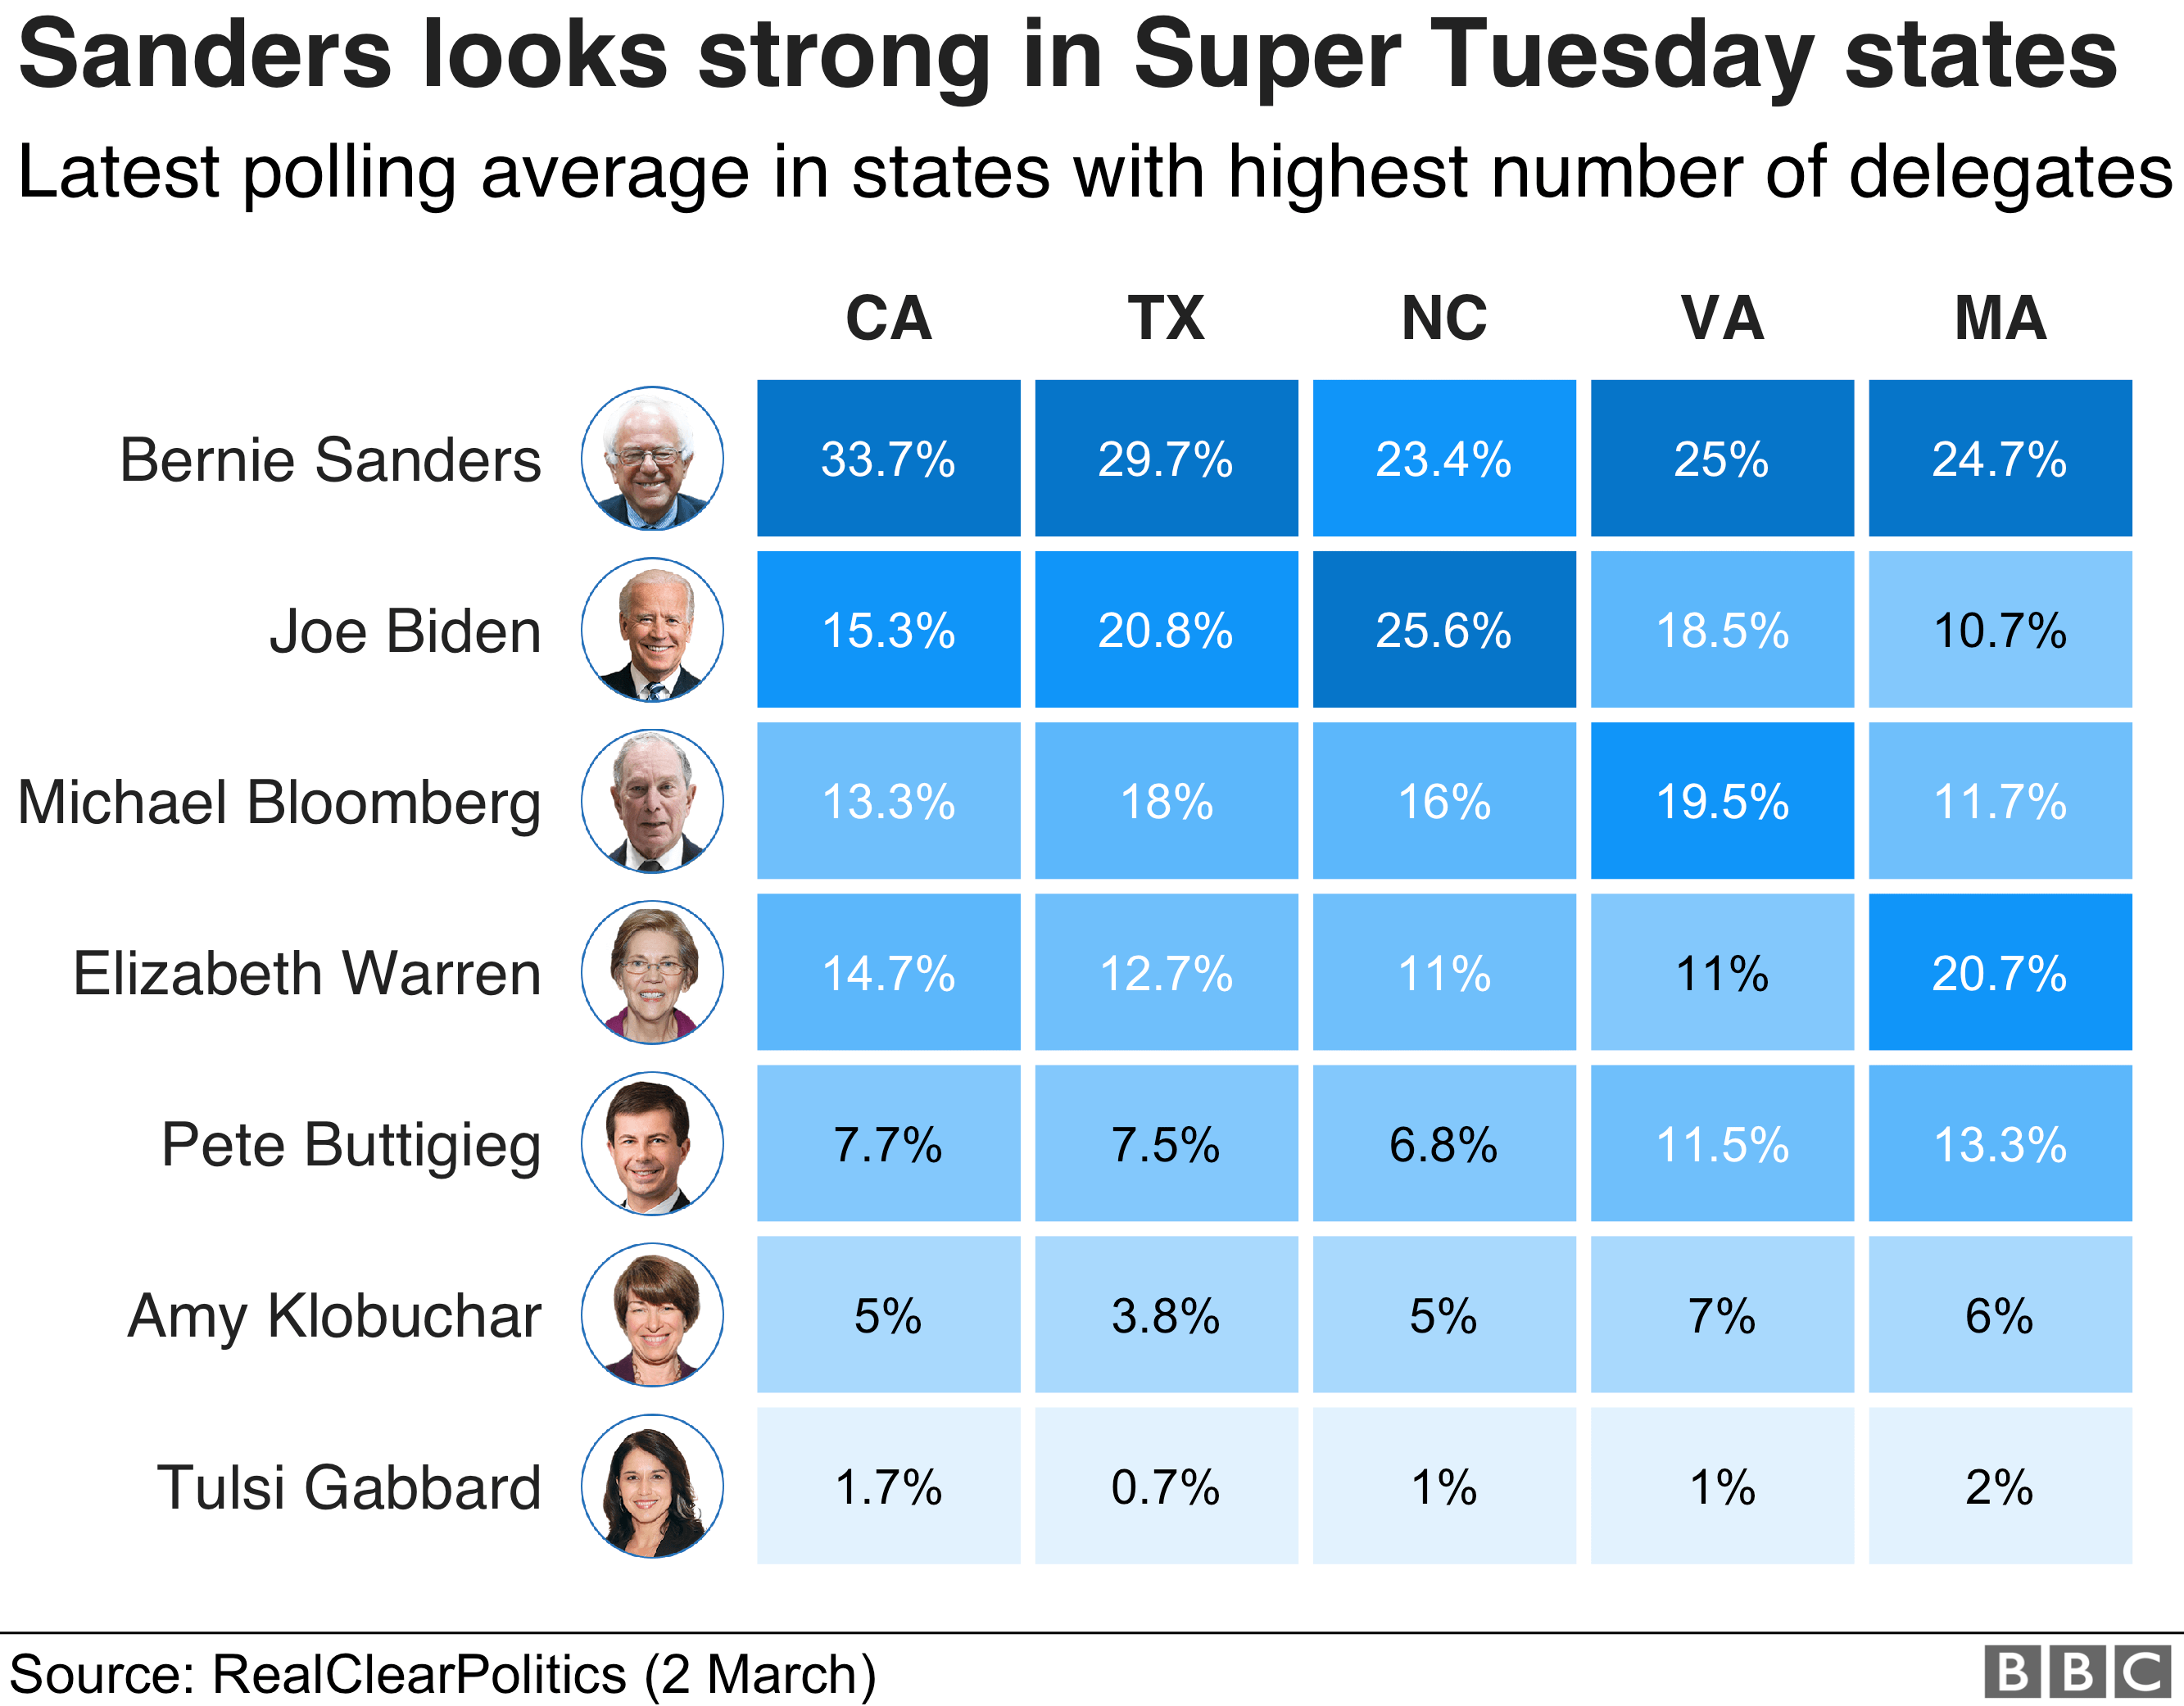 Chart showing polling for the five Super Tuesday states with the most delegates. Bernie Sanders is ahead in four, Biden leads in the other one